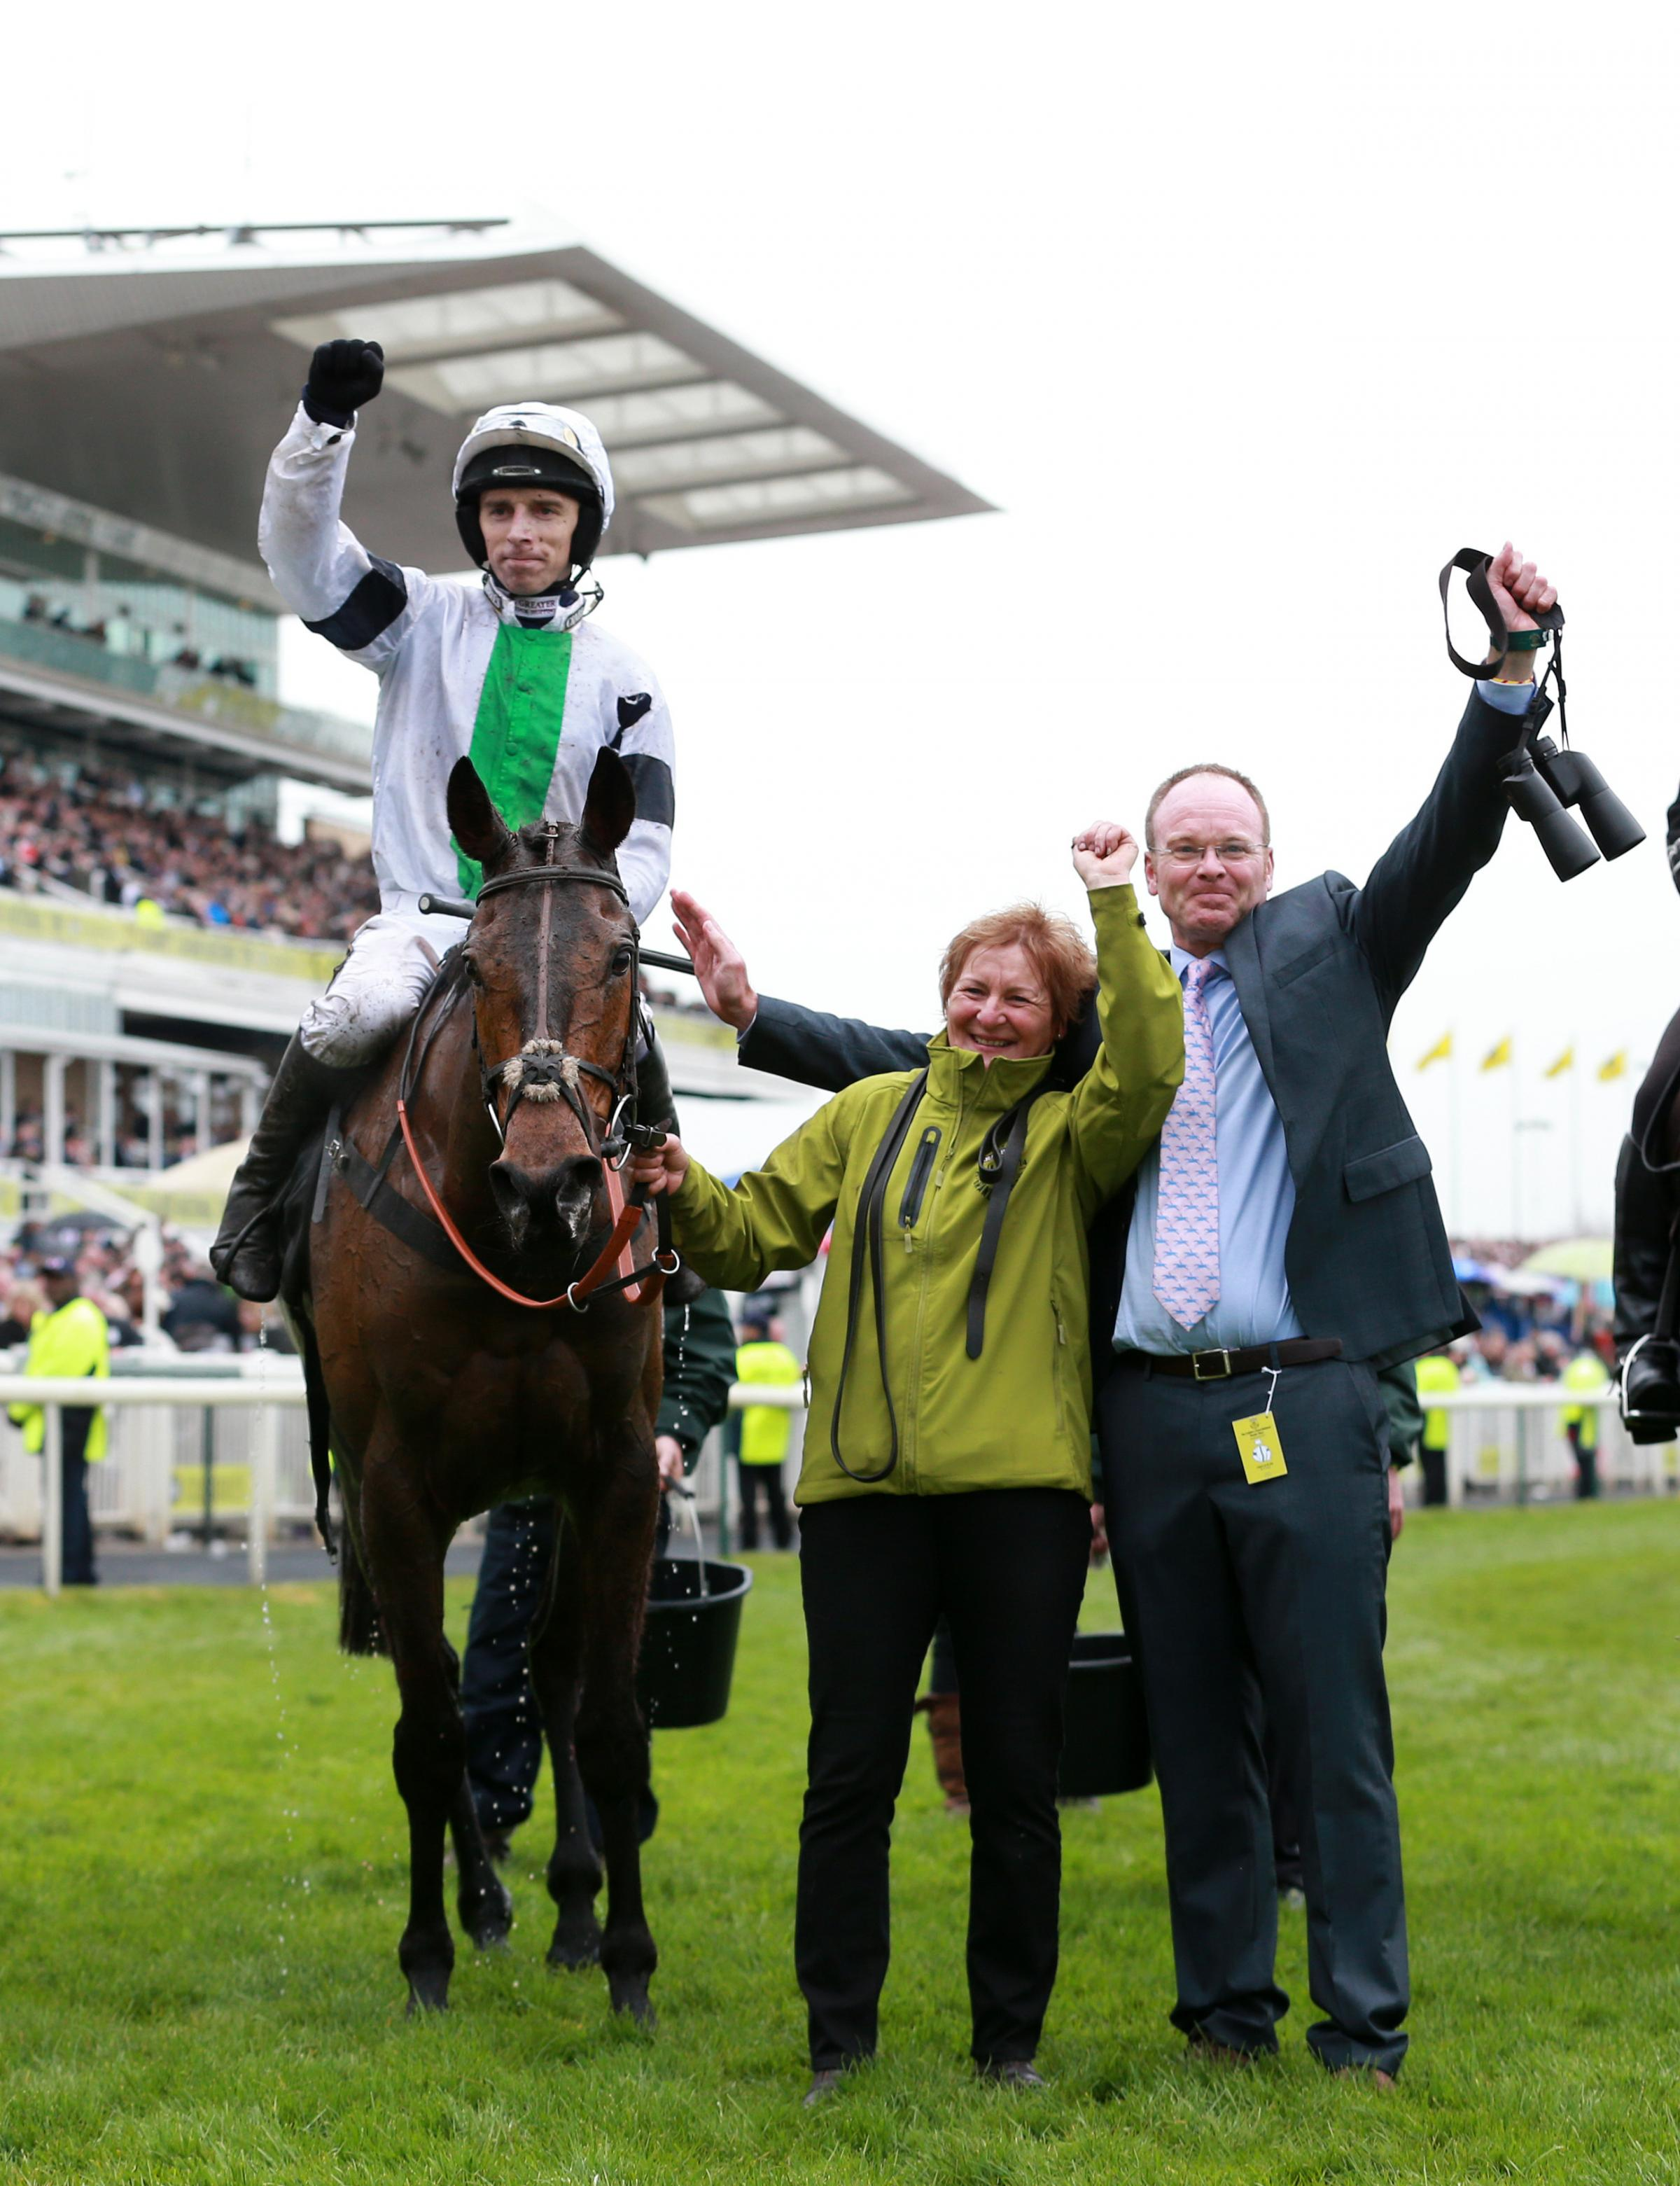 Leighton Aspell celebrates on Pineau De Re with trainer Dr Richard Newland (right) after winning The Crabbie's Grand National Steeple Chase during Grand National Day of the Crabbie's Grand National 2014 Festival at Aintree Racecourse.